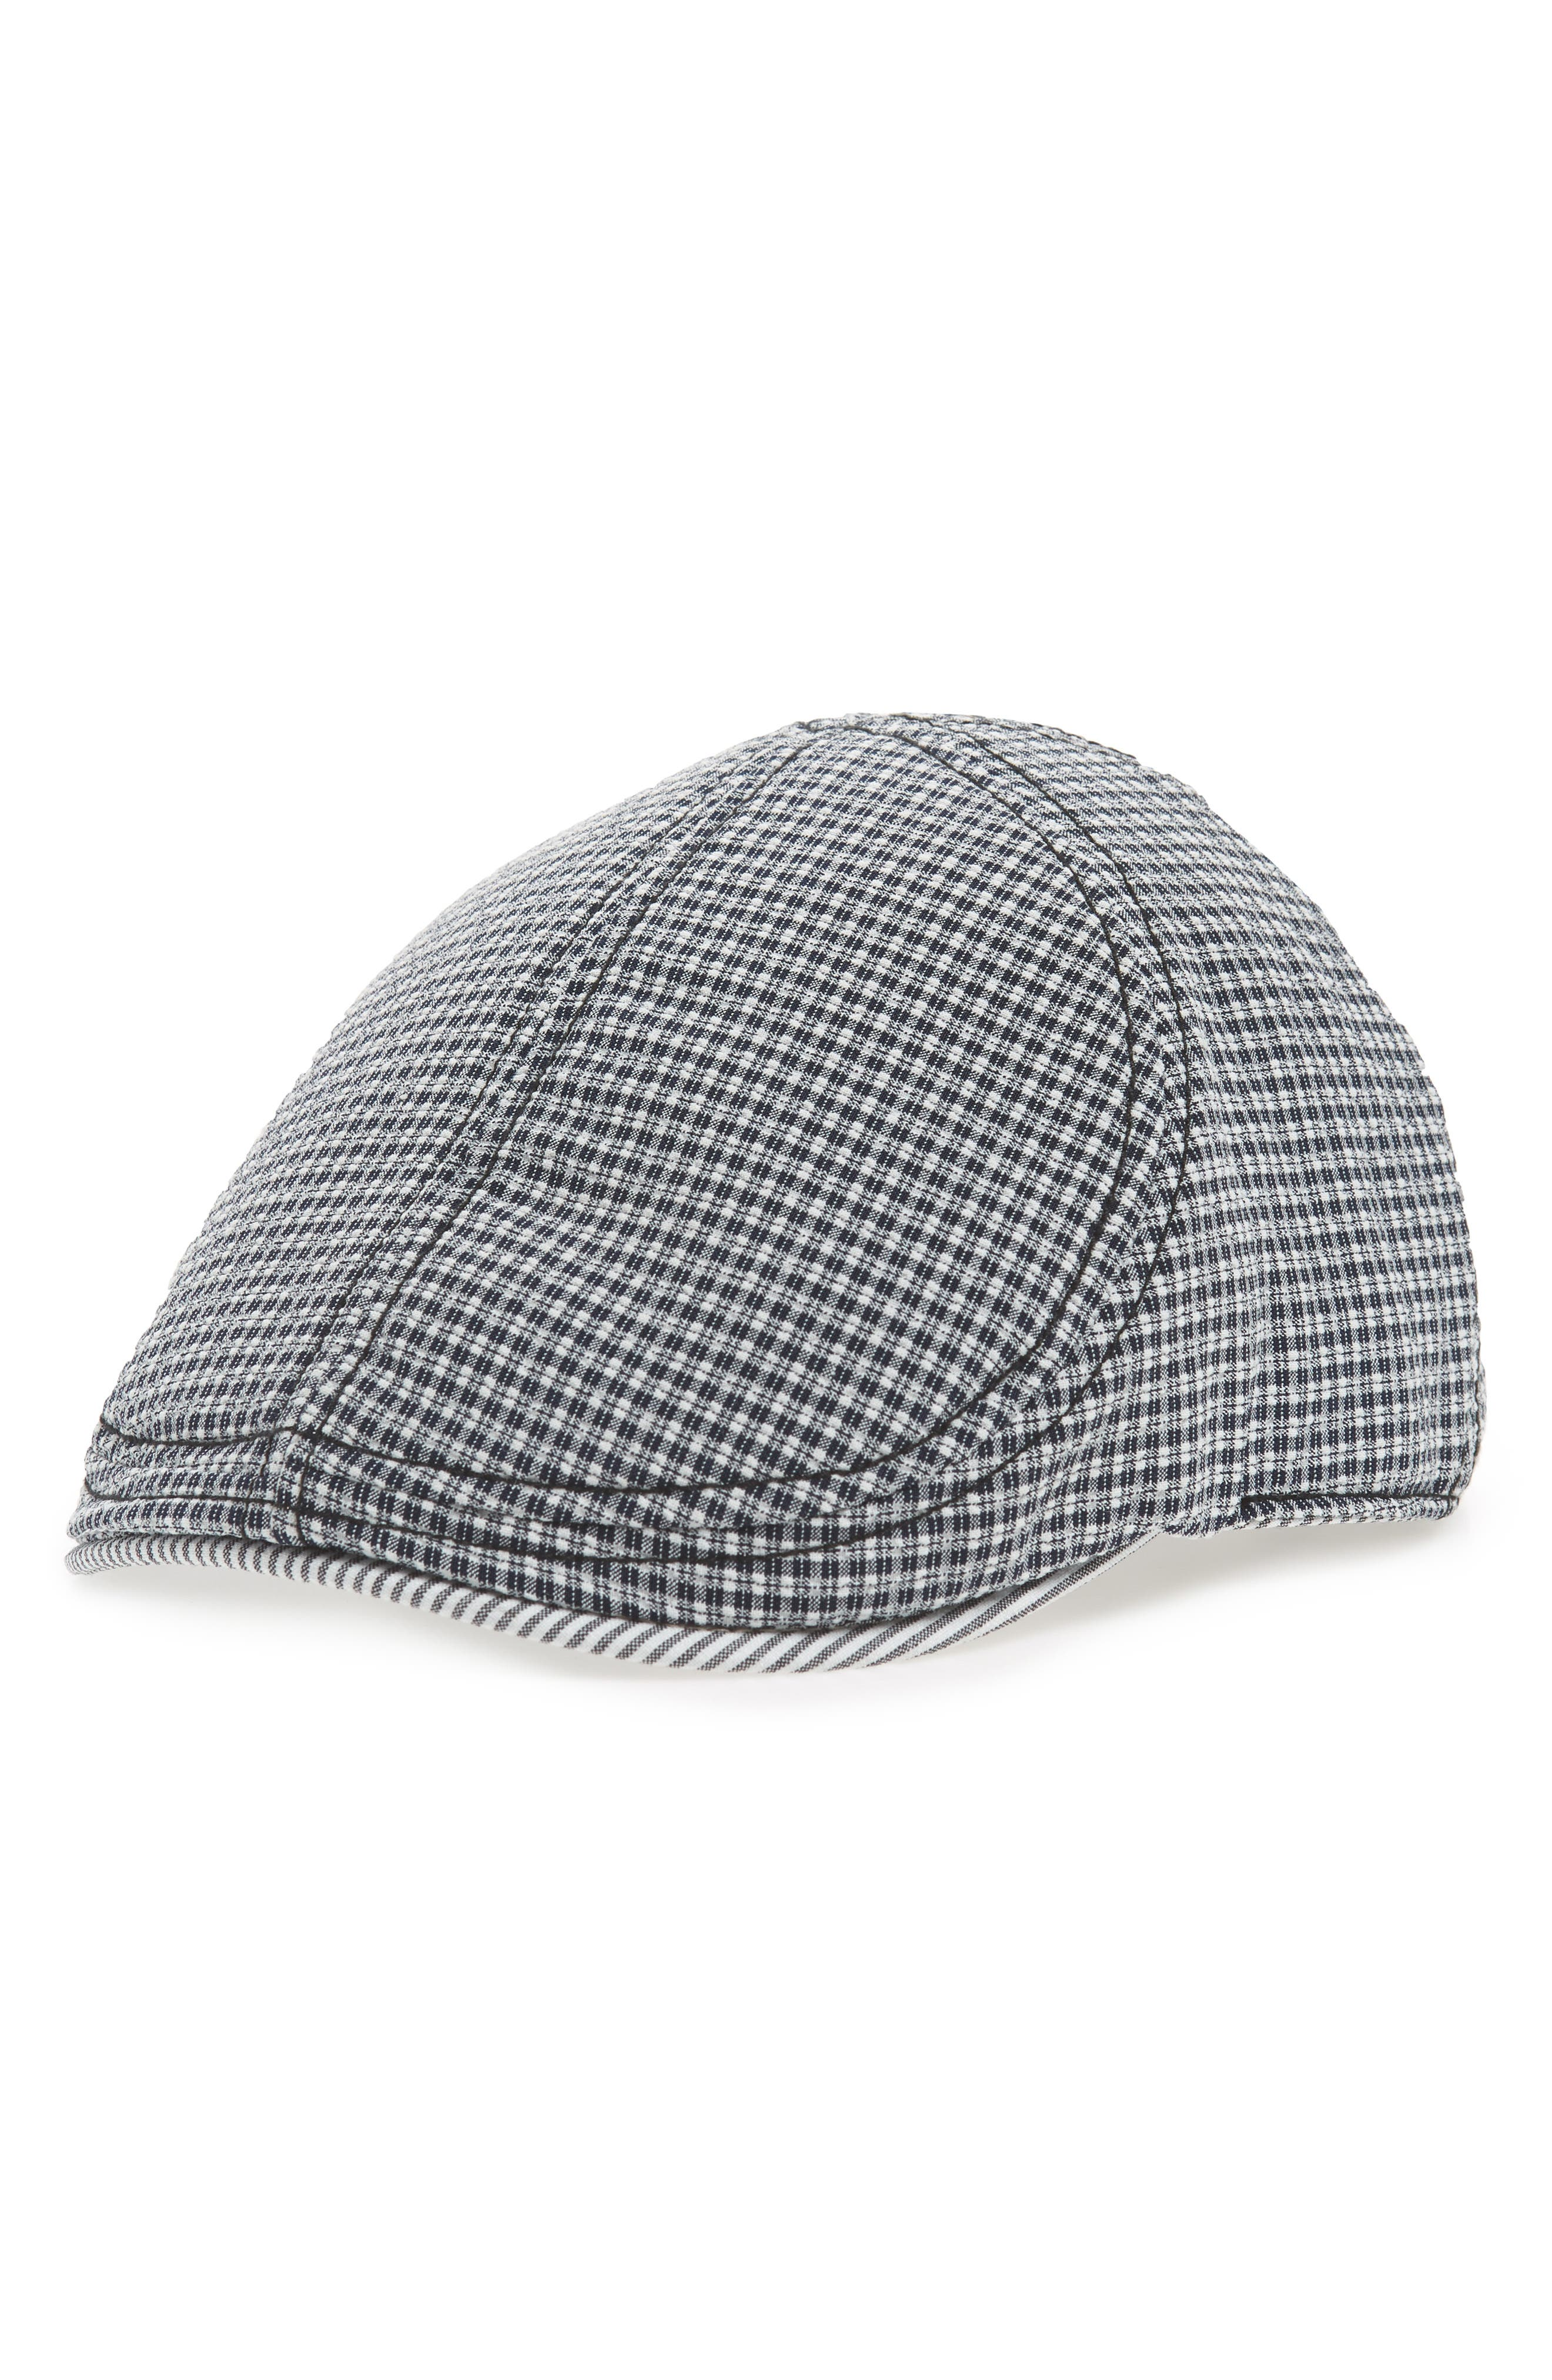 Fridays Driving Cap,                         Main,                         color, 020